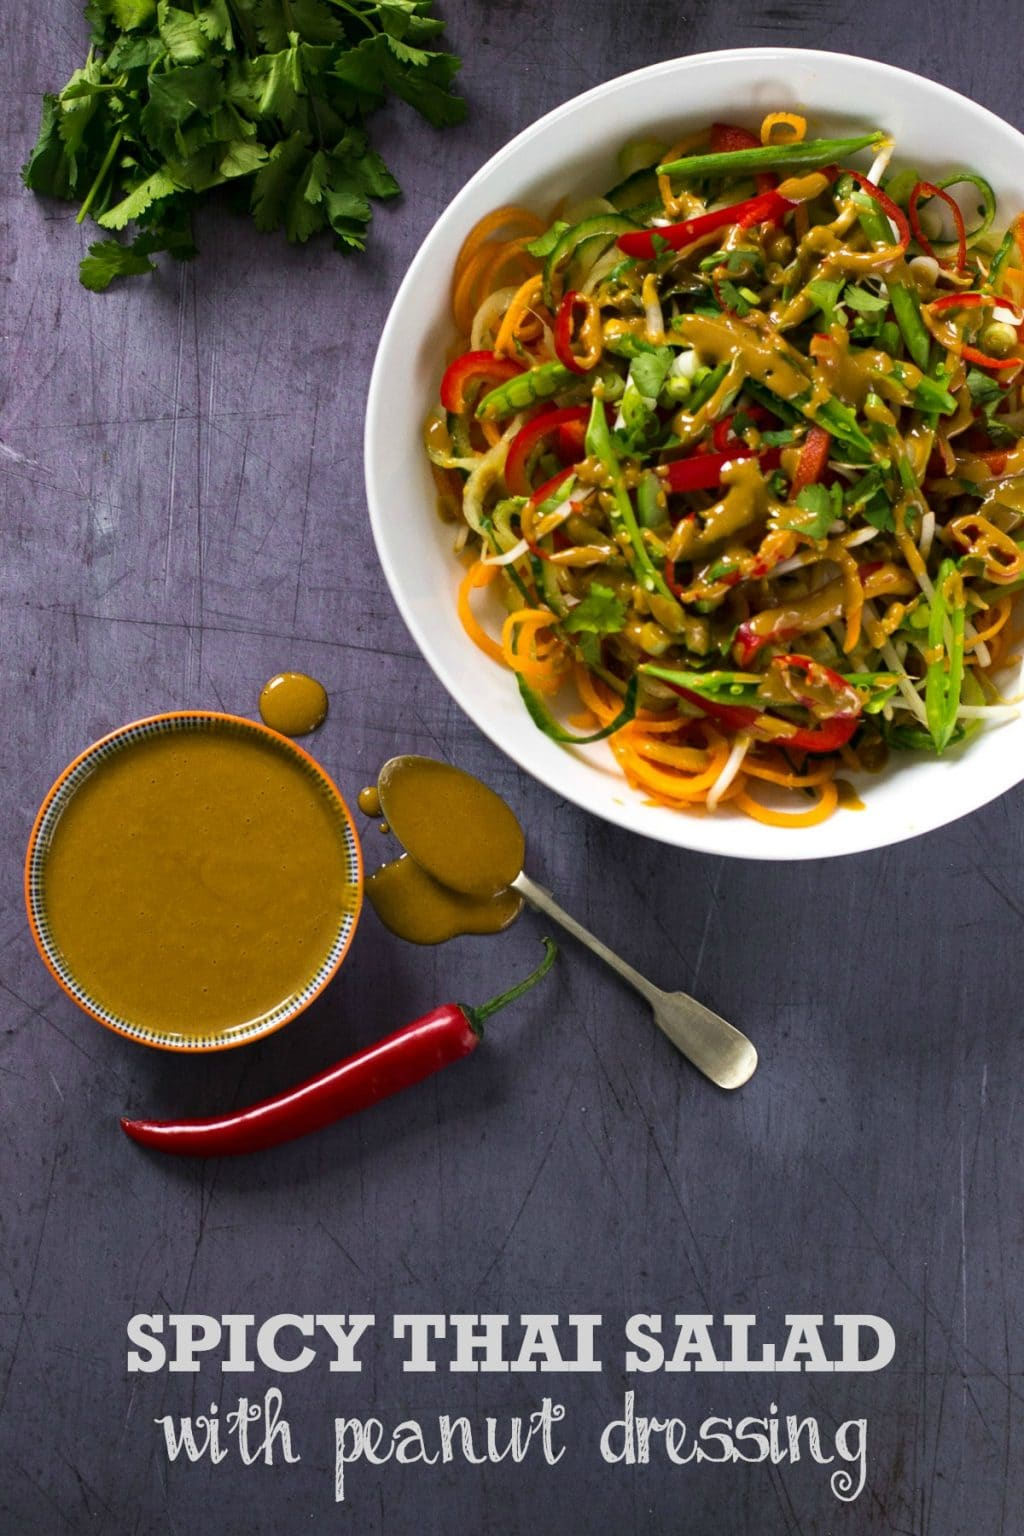 A Spicy Thai Salad with Peanut Dressing - #vegan #plantbased | thevegspace.co.uk